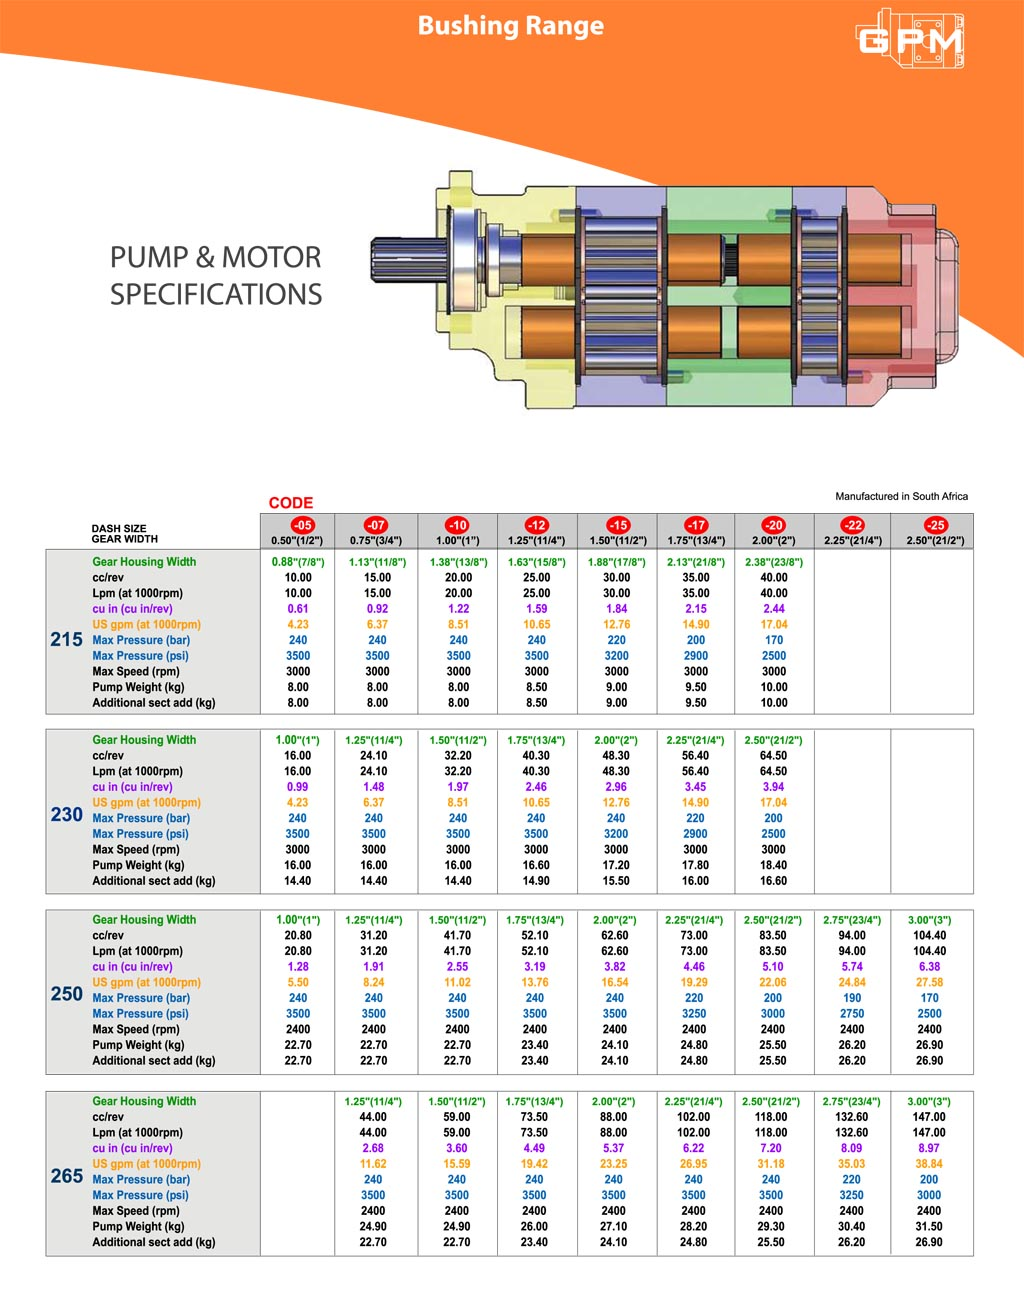 GPM Bushing Pump & Motor Specifications